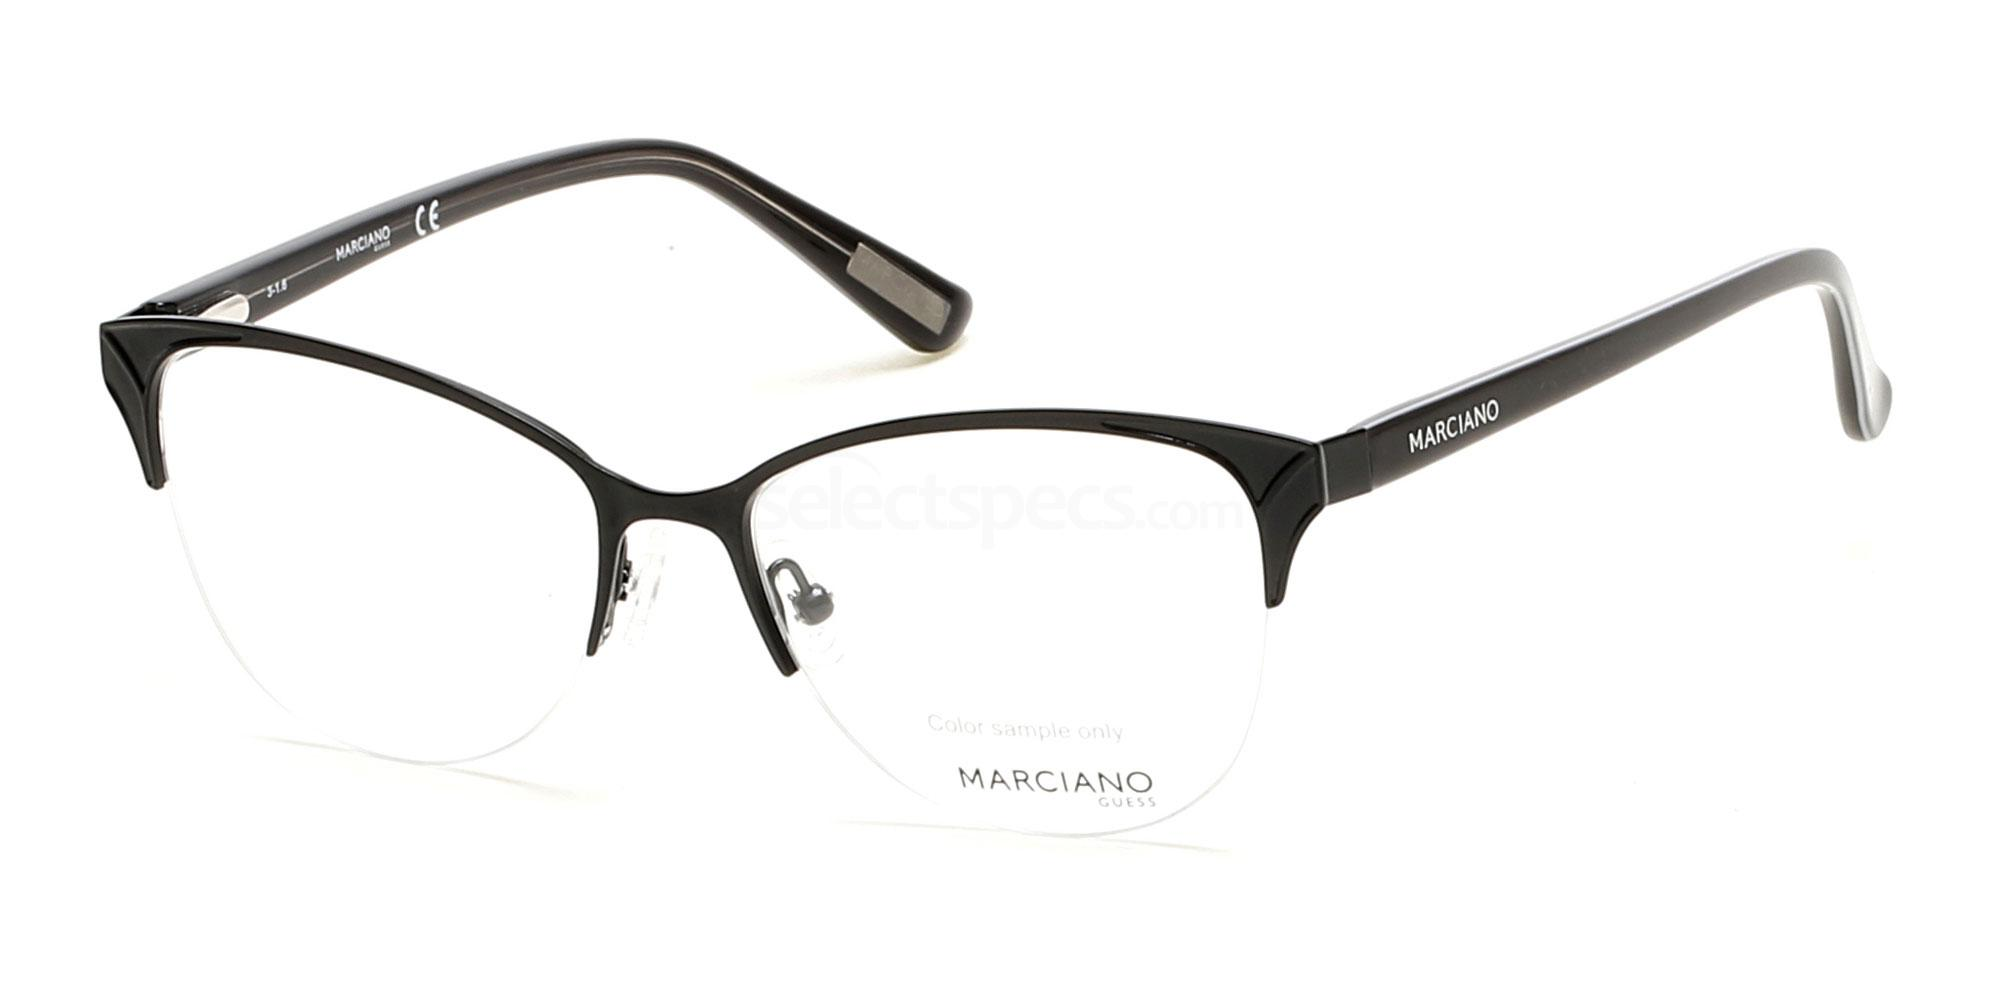 002 GM0290 Glasses, Guess by Marciano